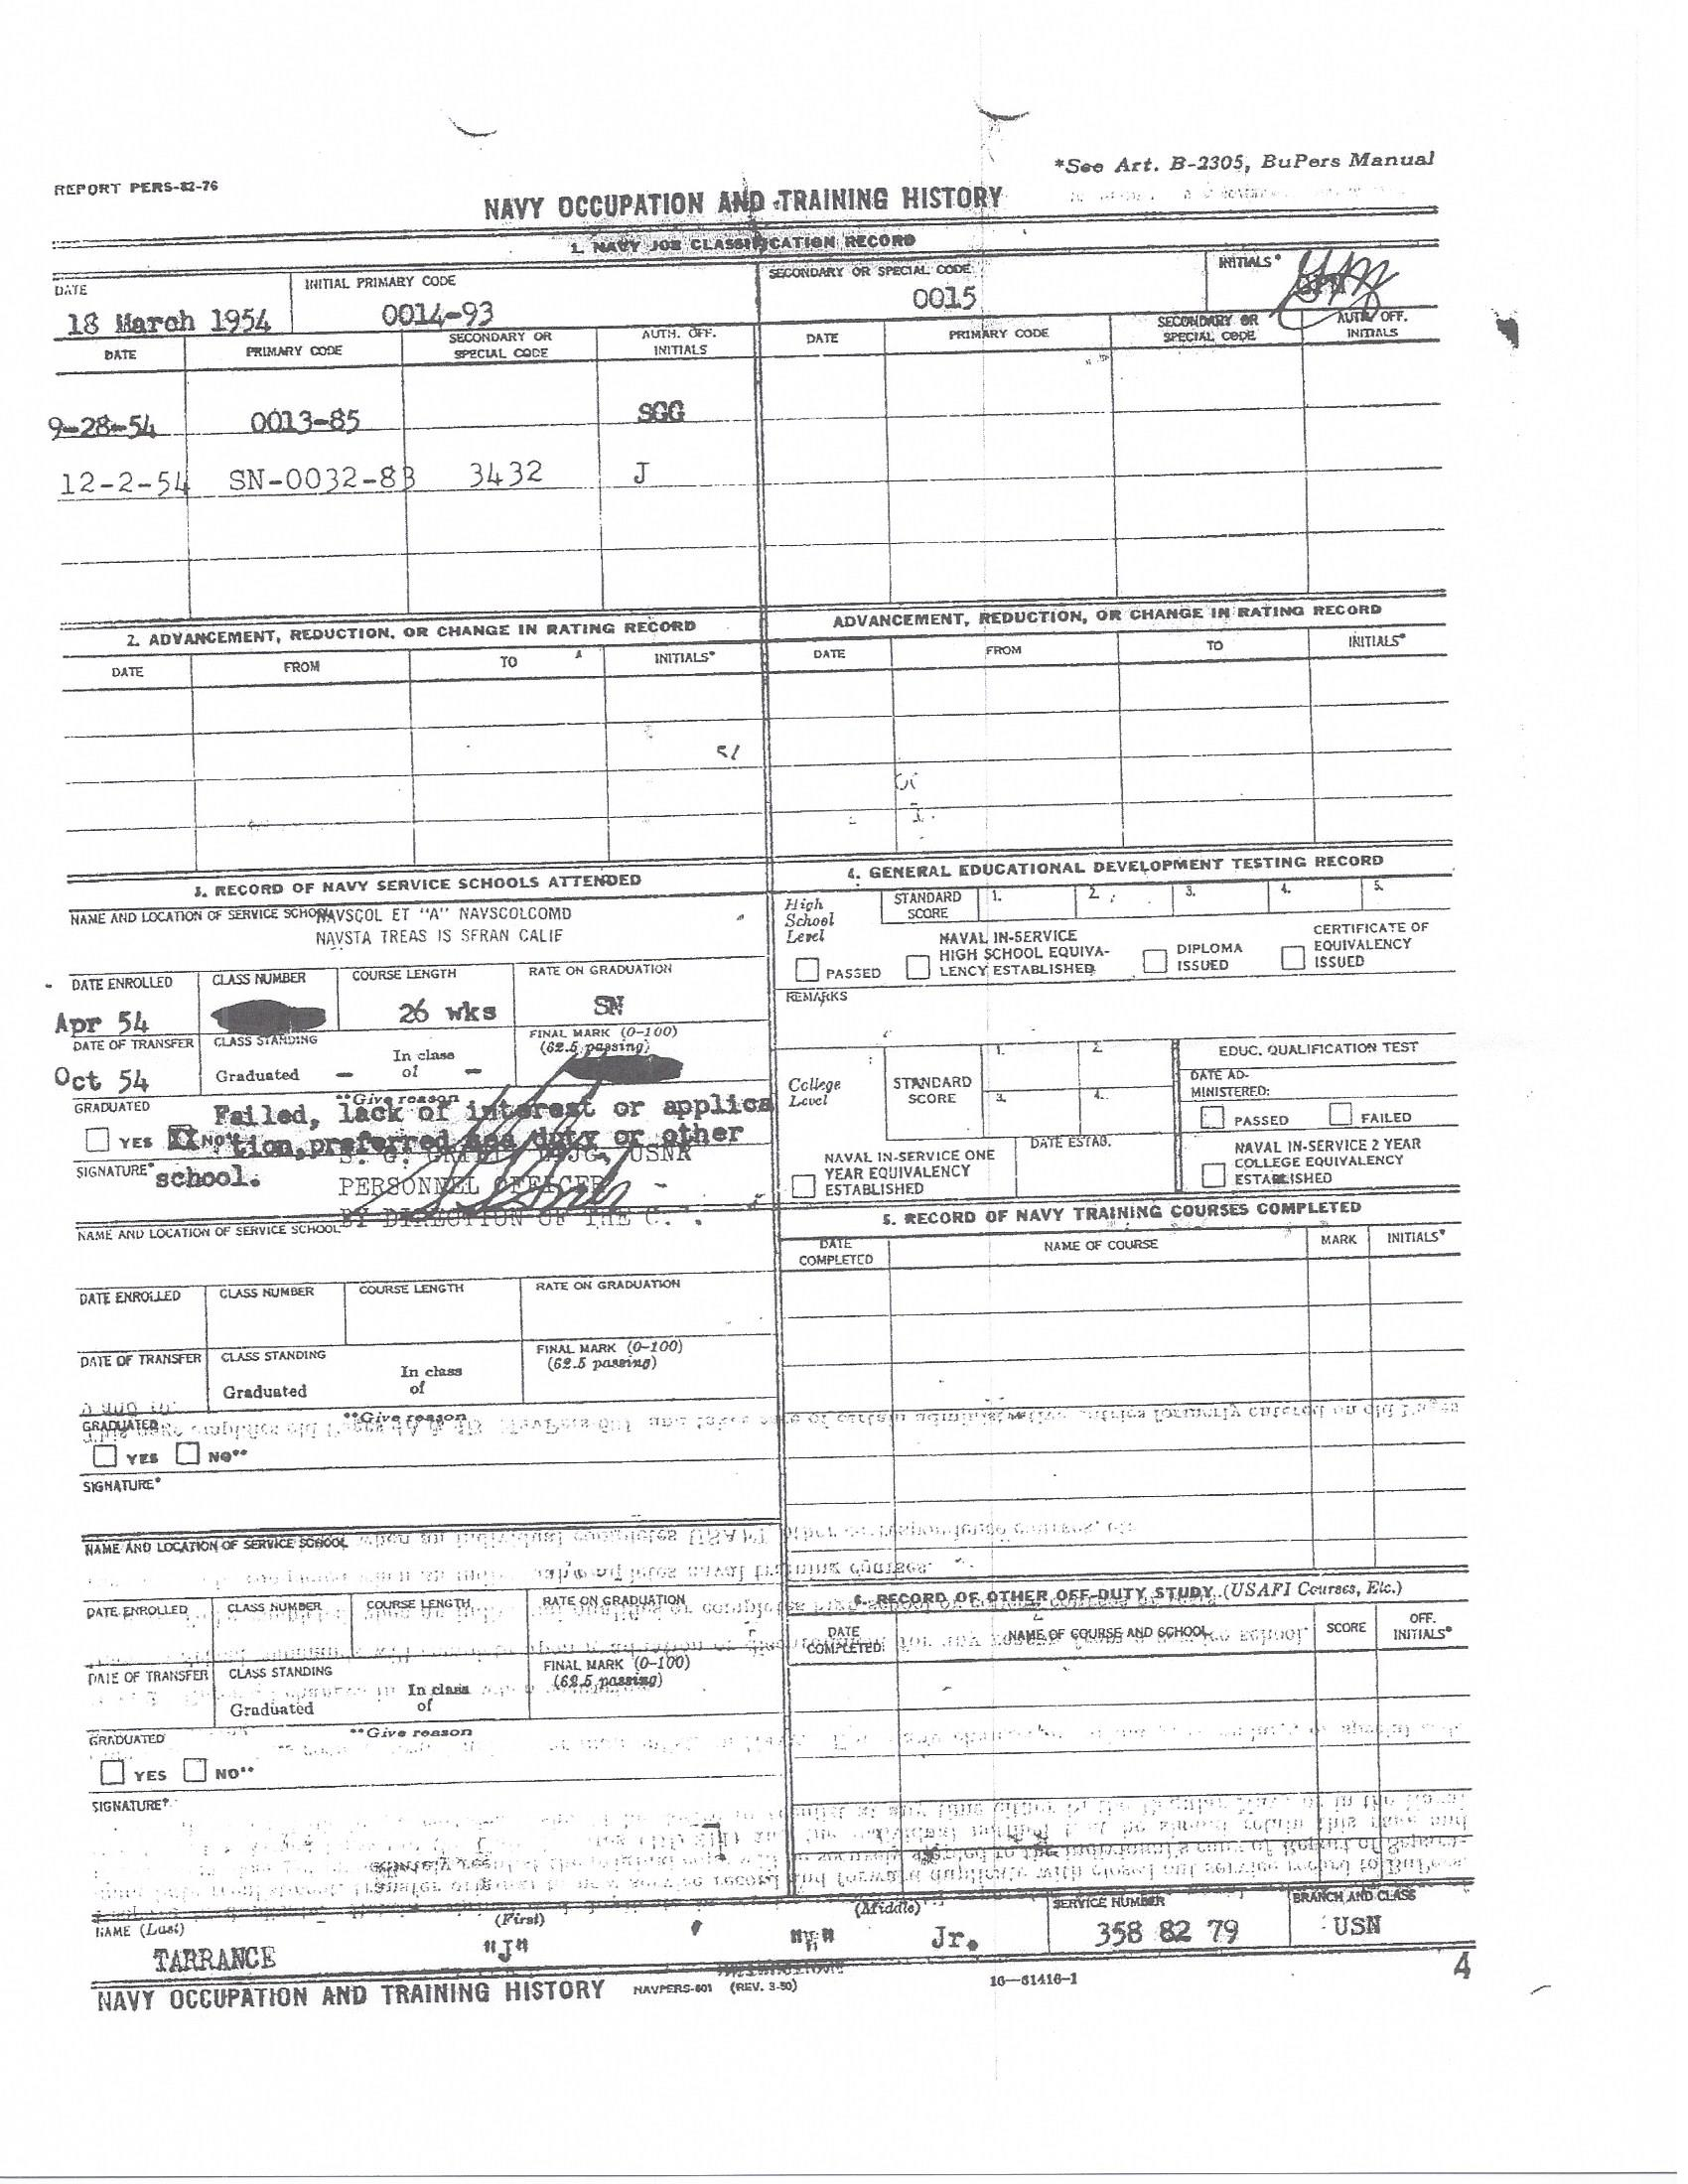 Jack's Military Record FOIA0009.jpg